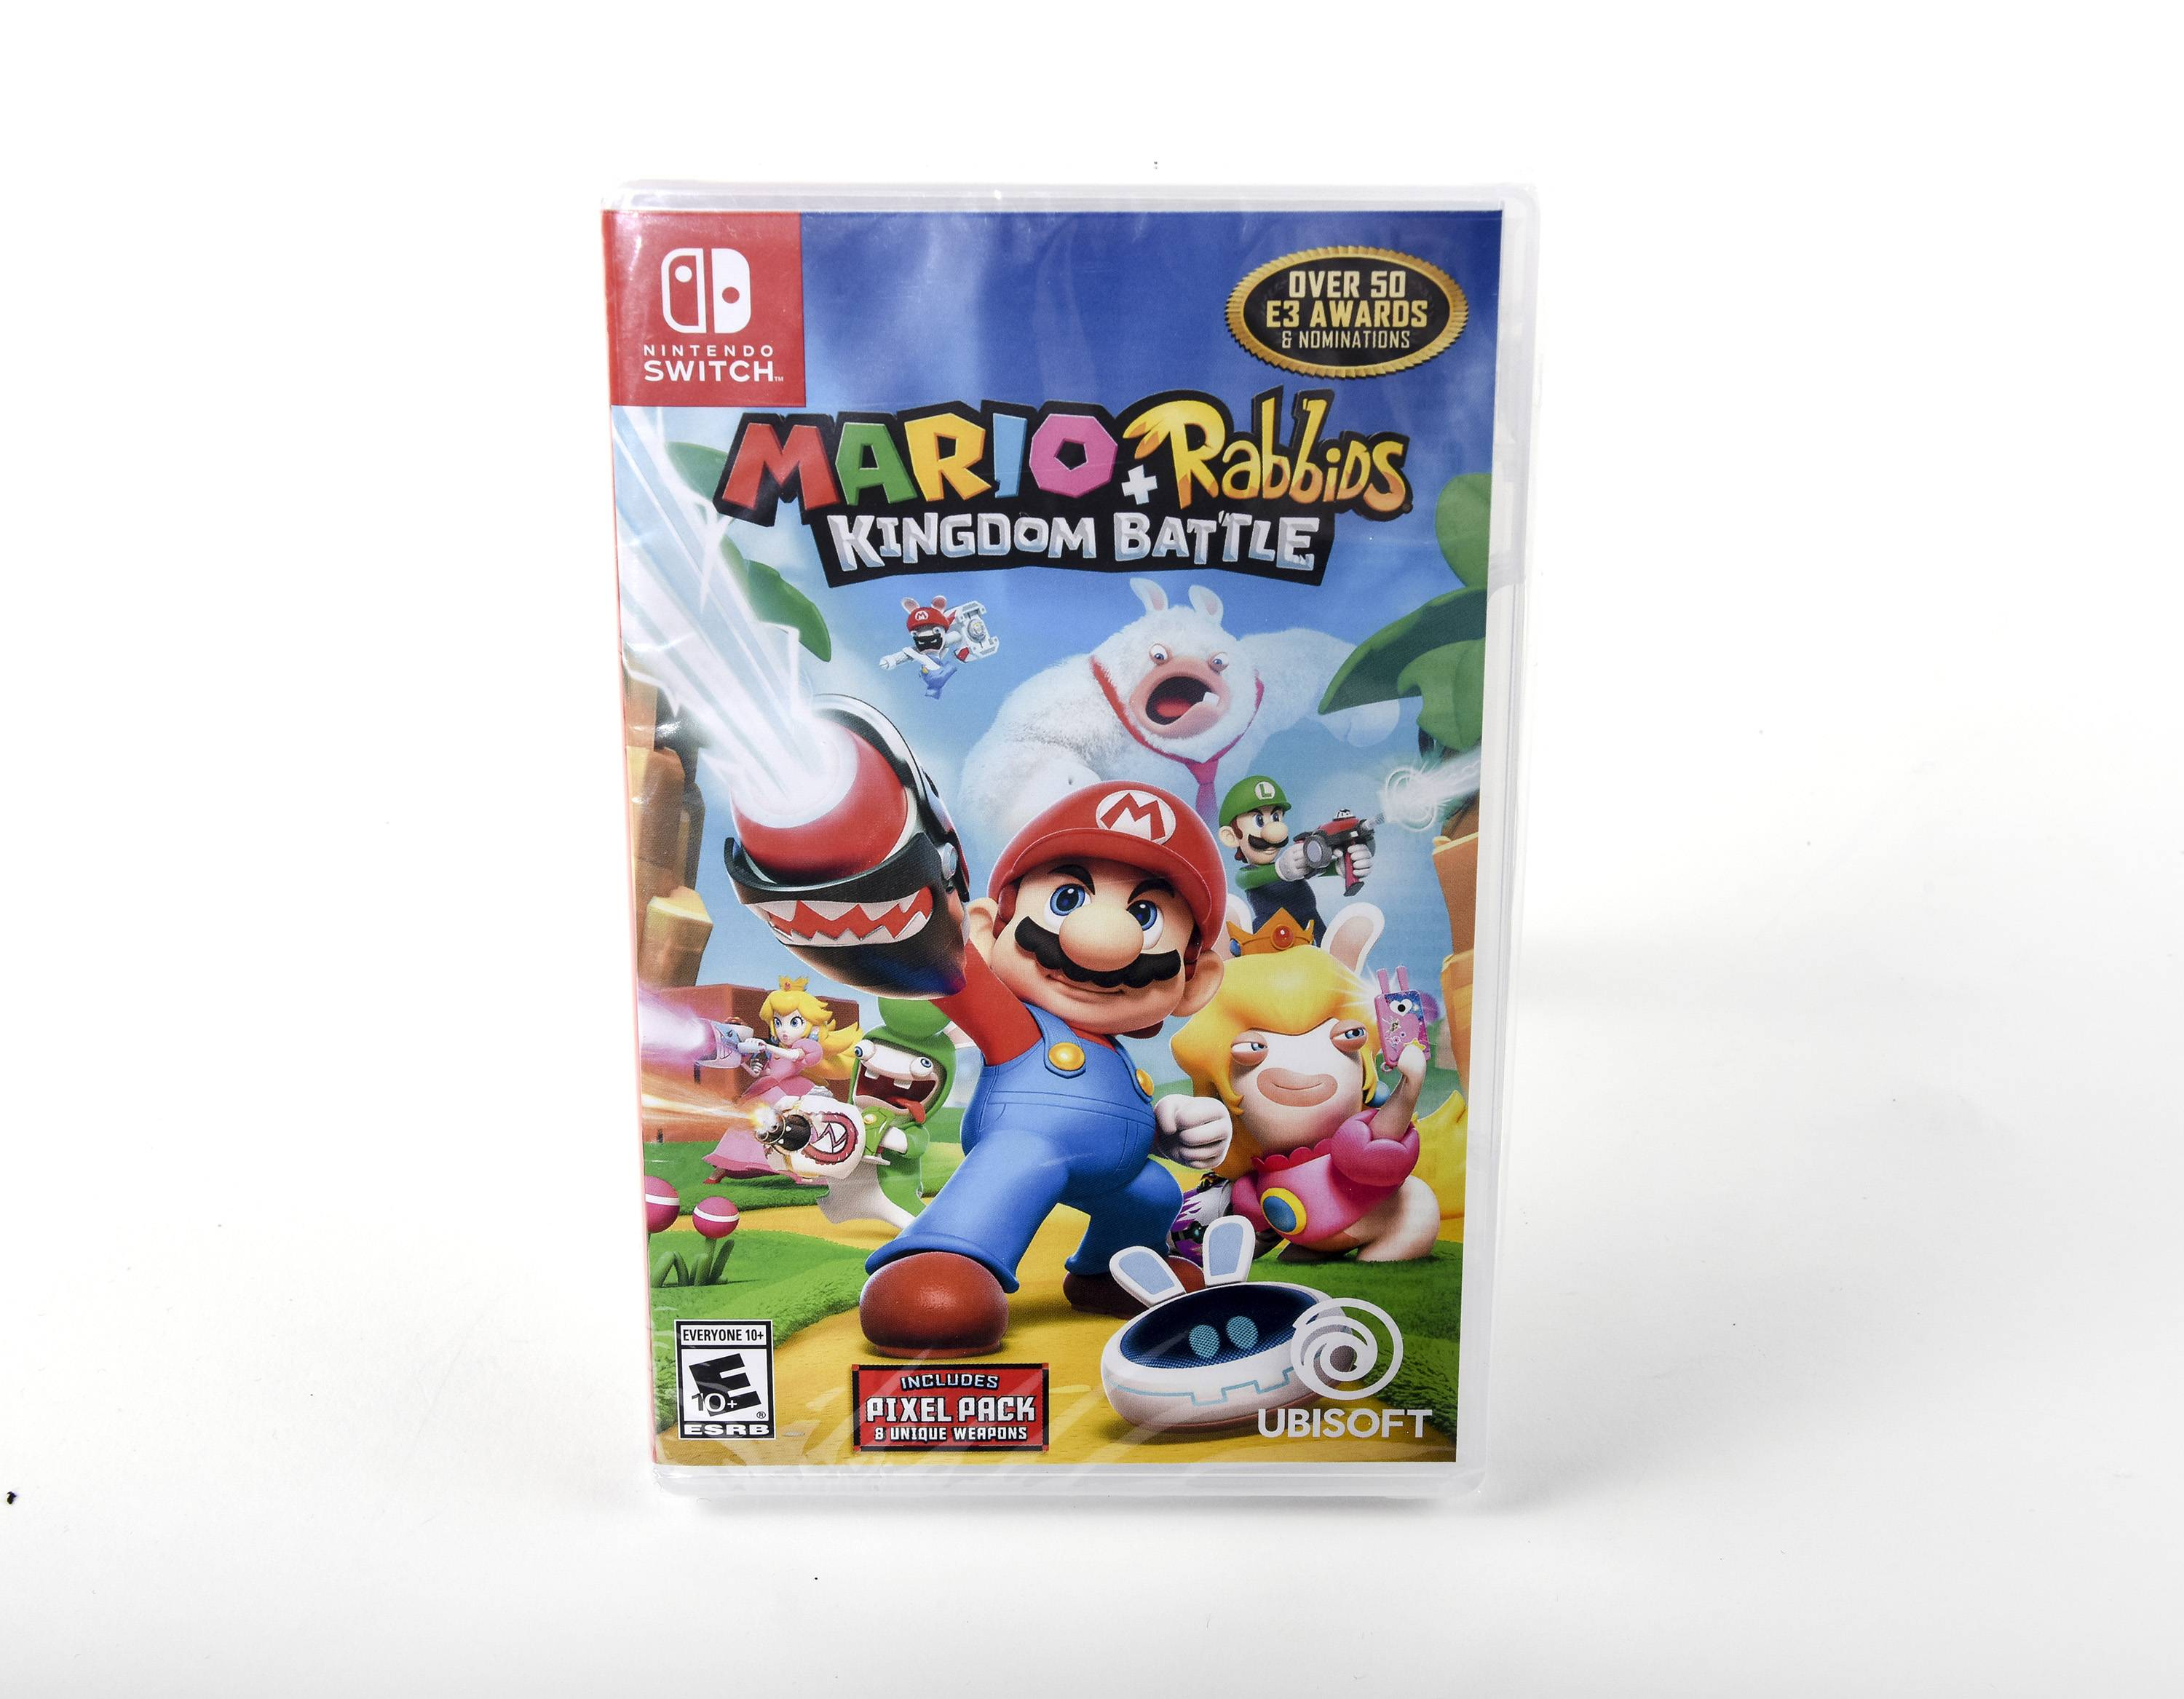 Mario and Rabbids video game